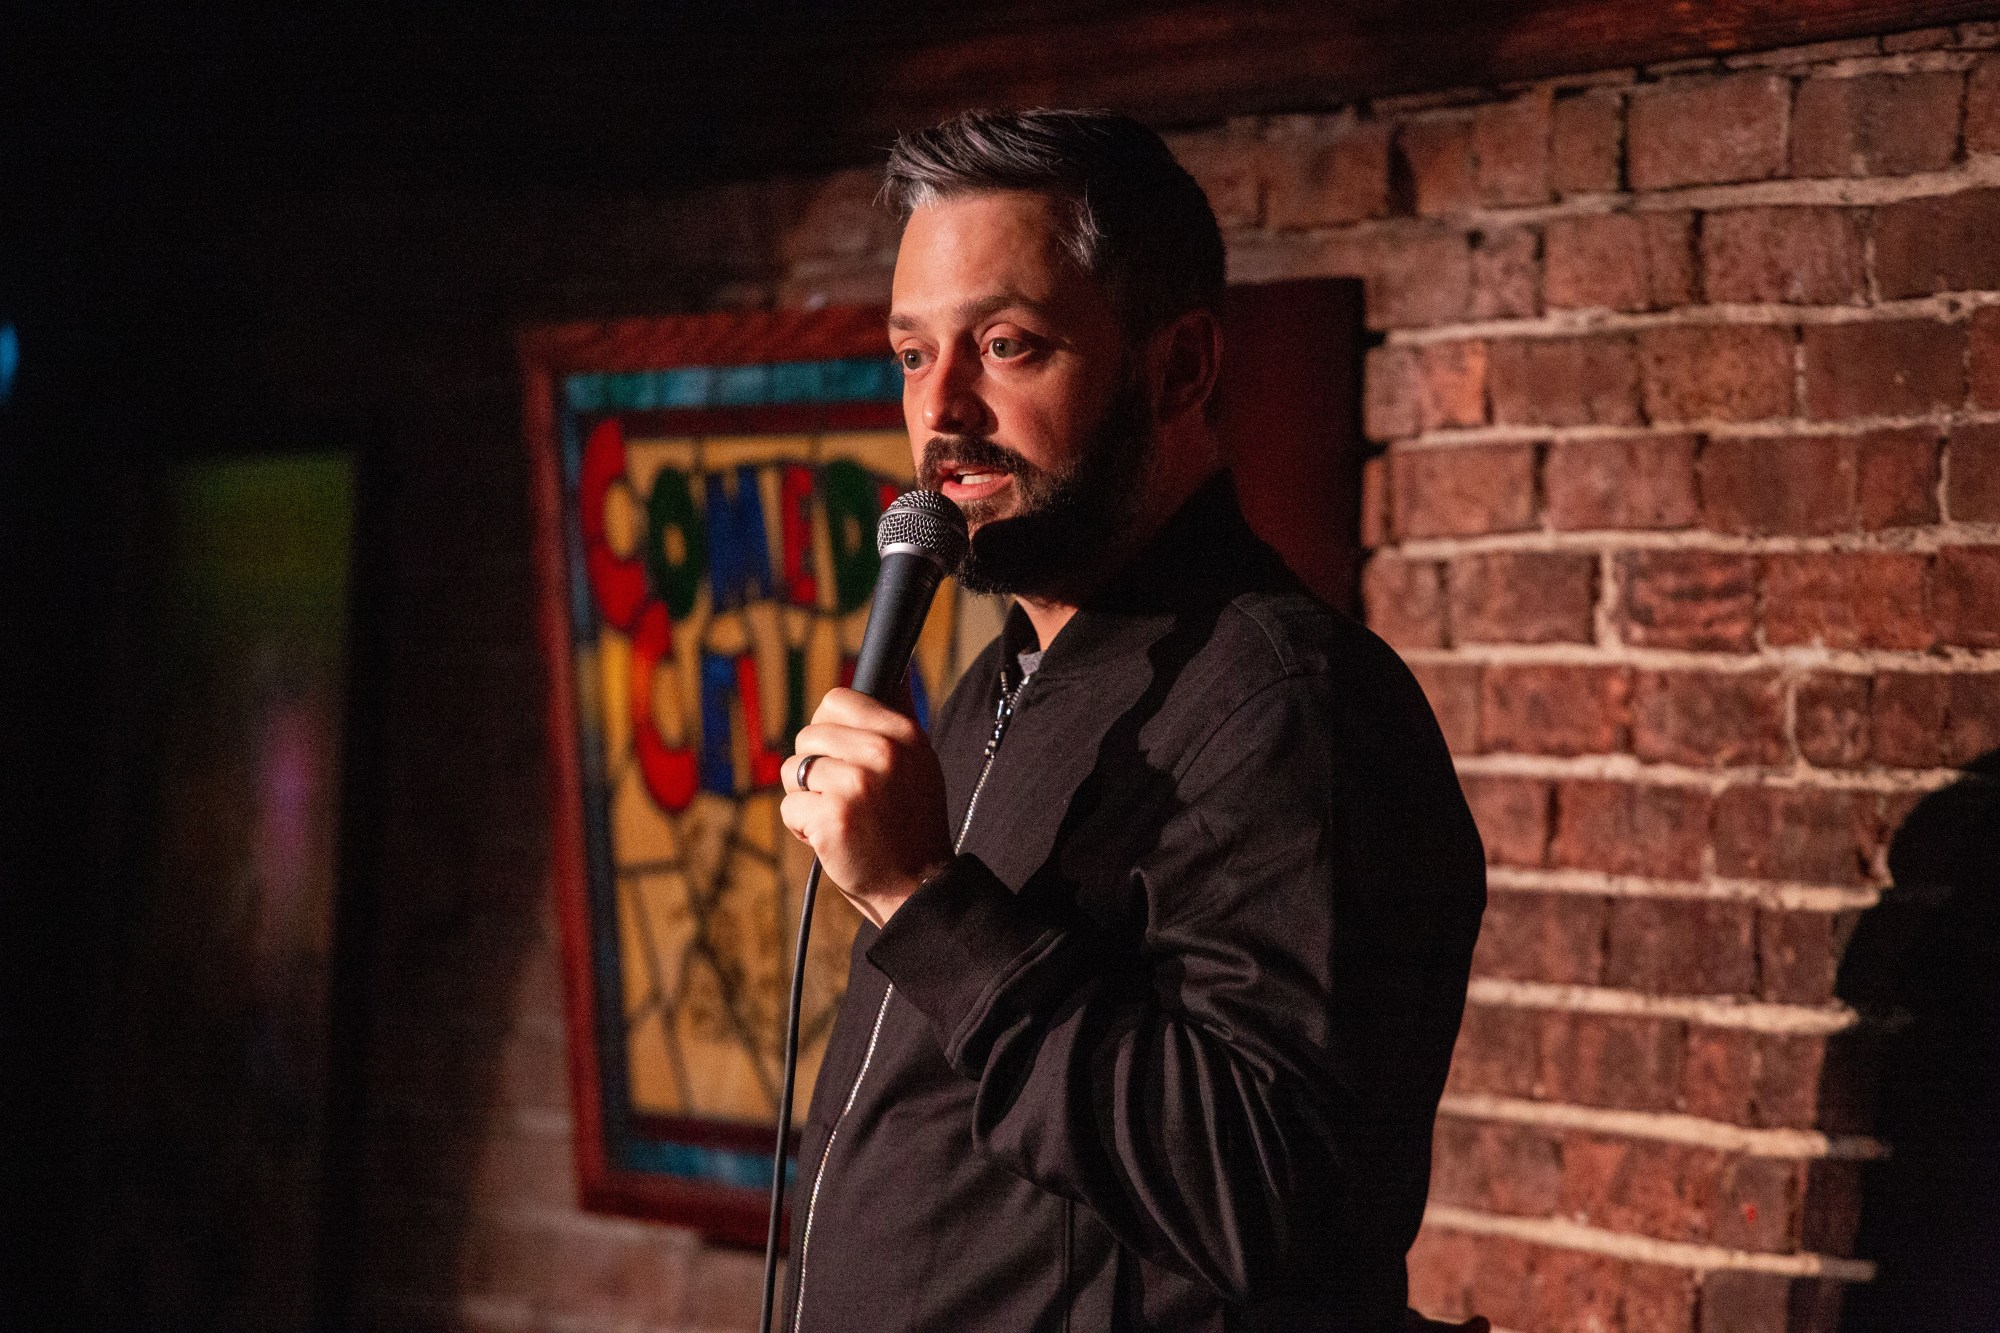 Comedian, actor, and writer Nate Bargatze is extending his stand-up tour to Roanoke next year.